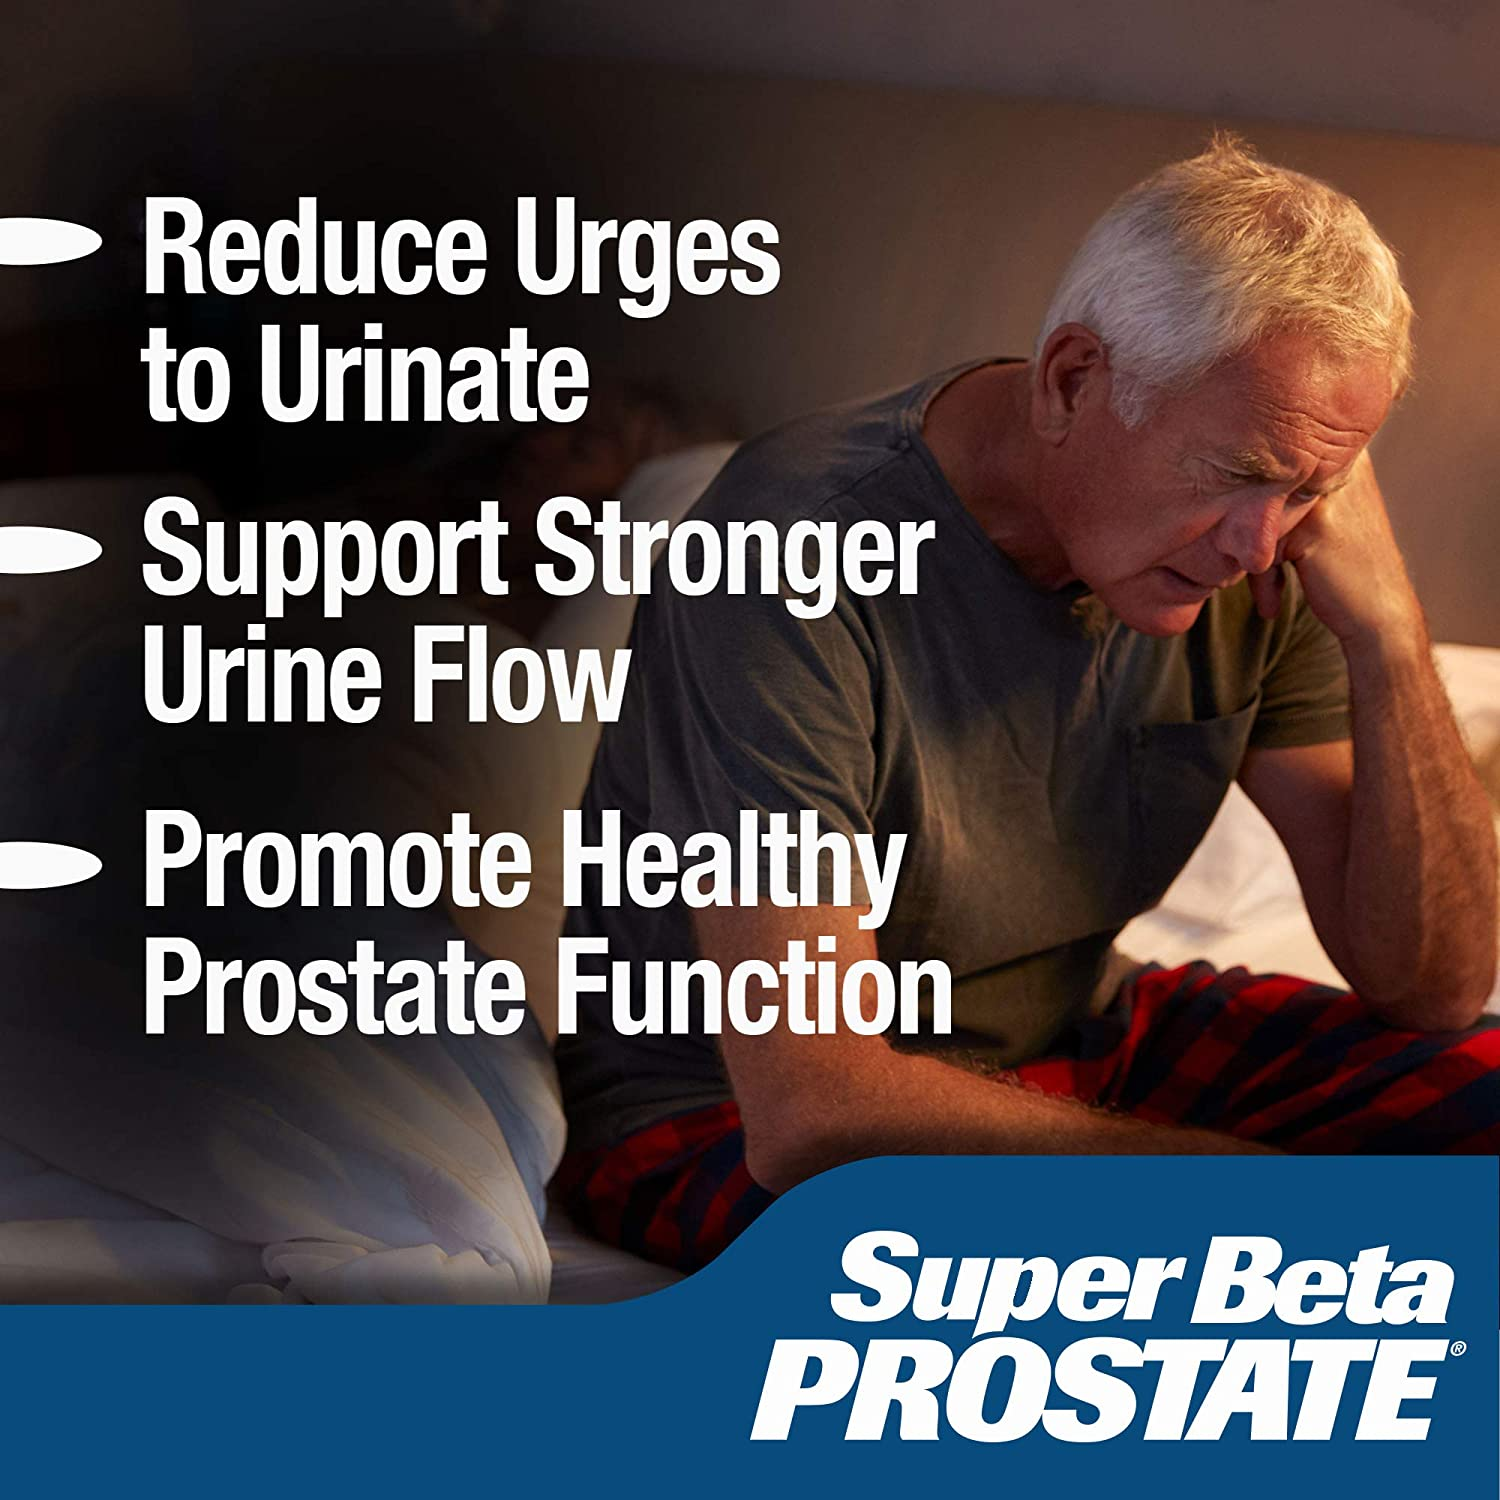 super beta prostate reviews